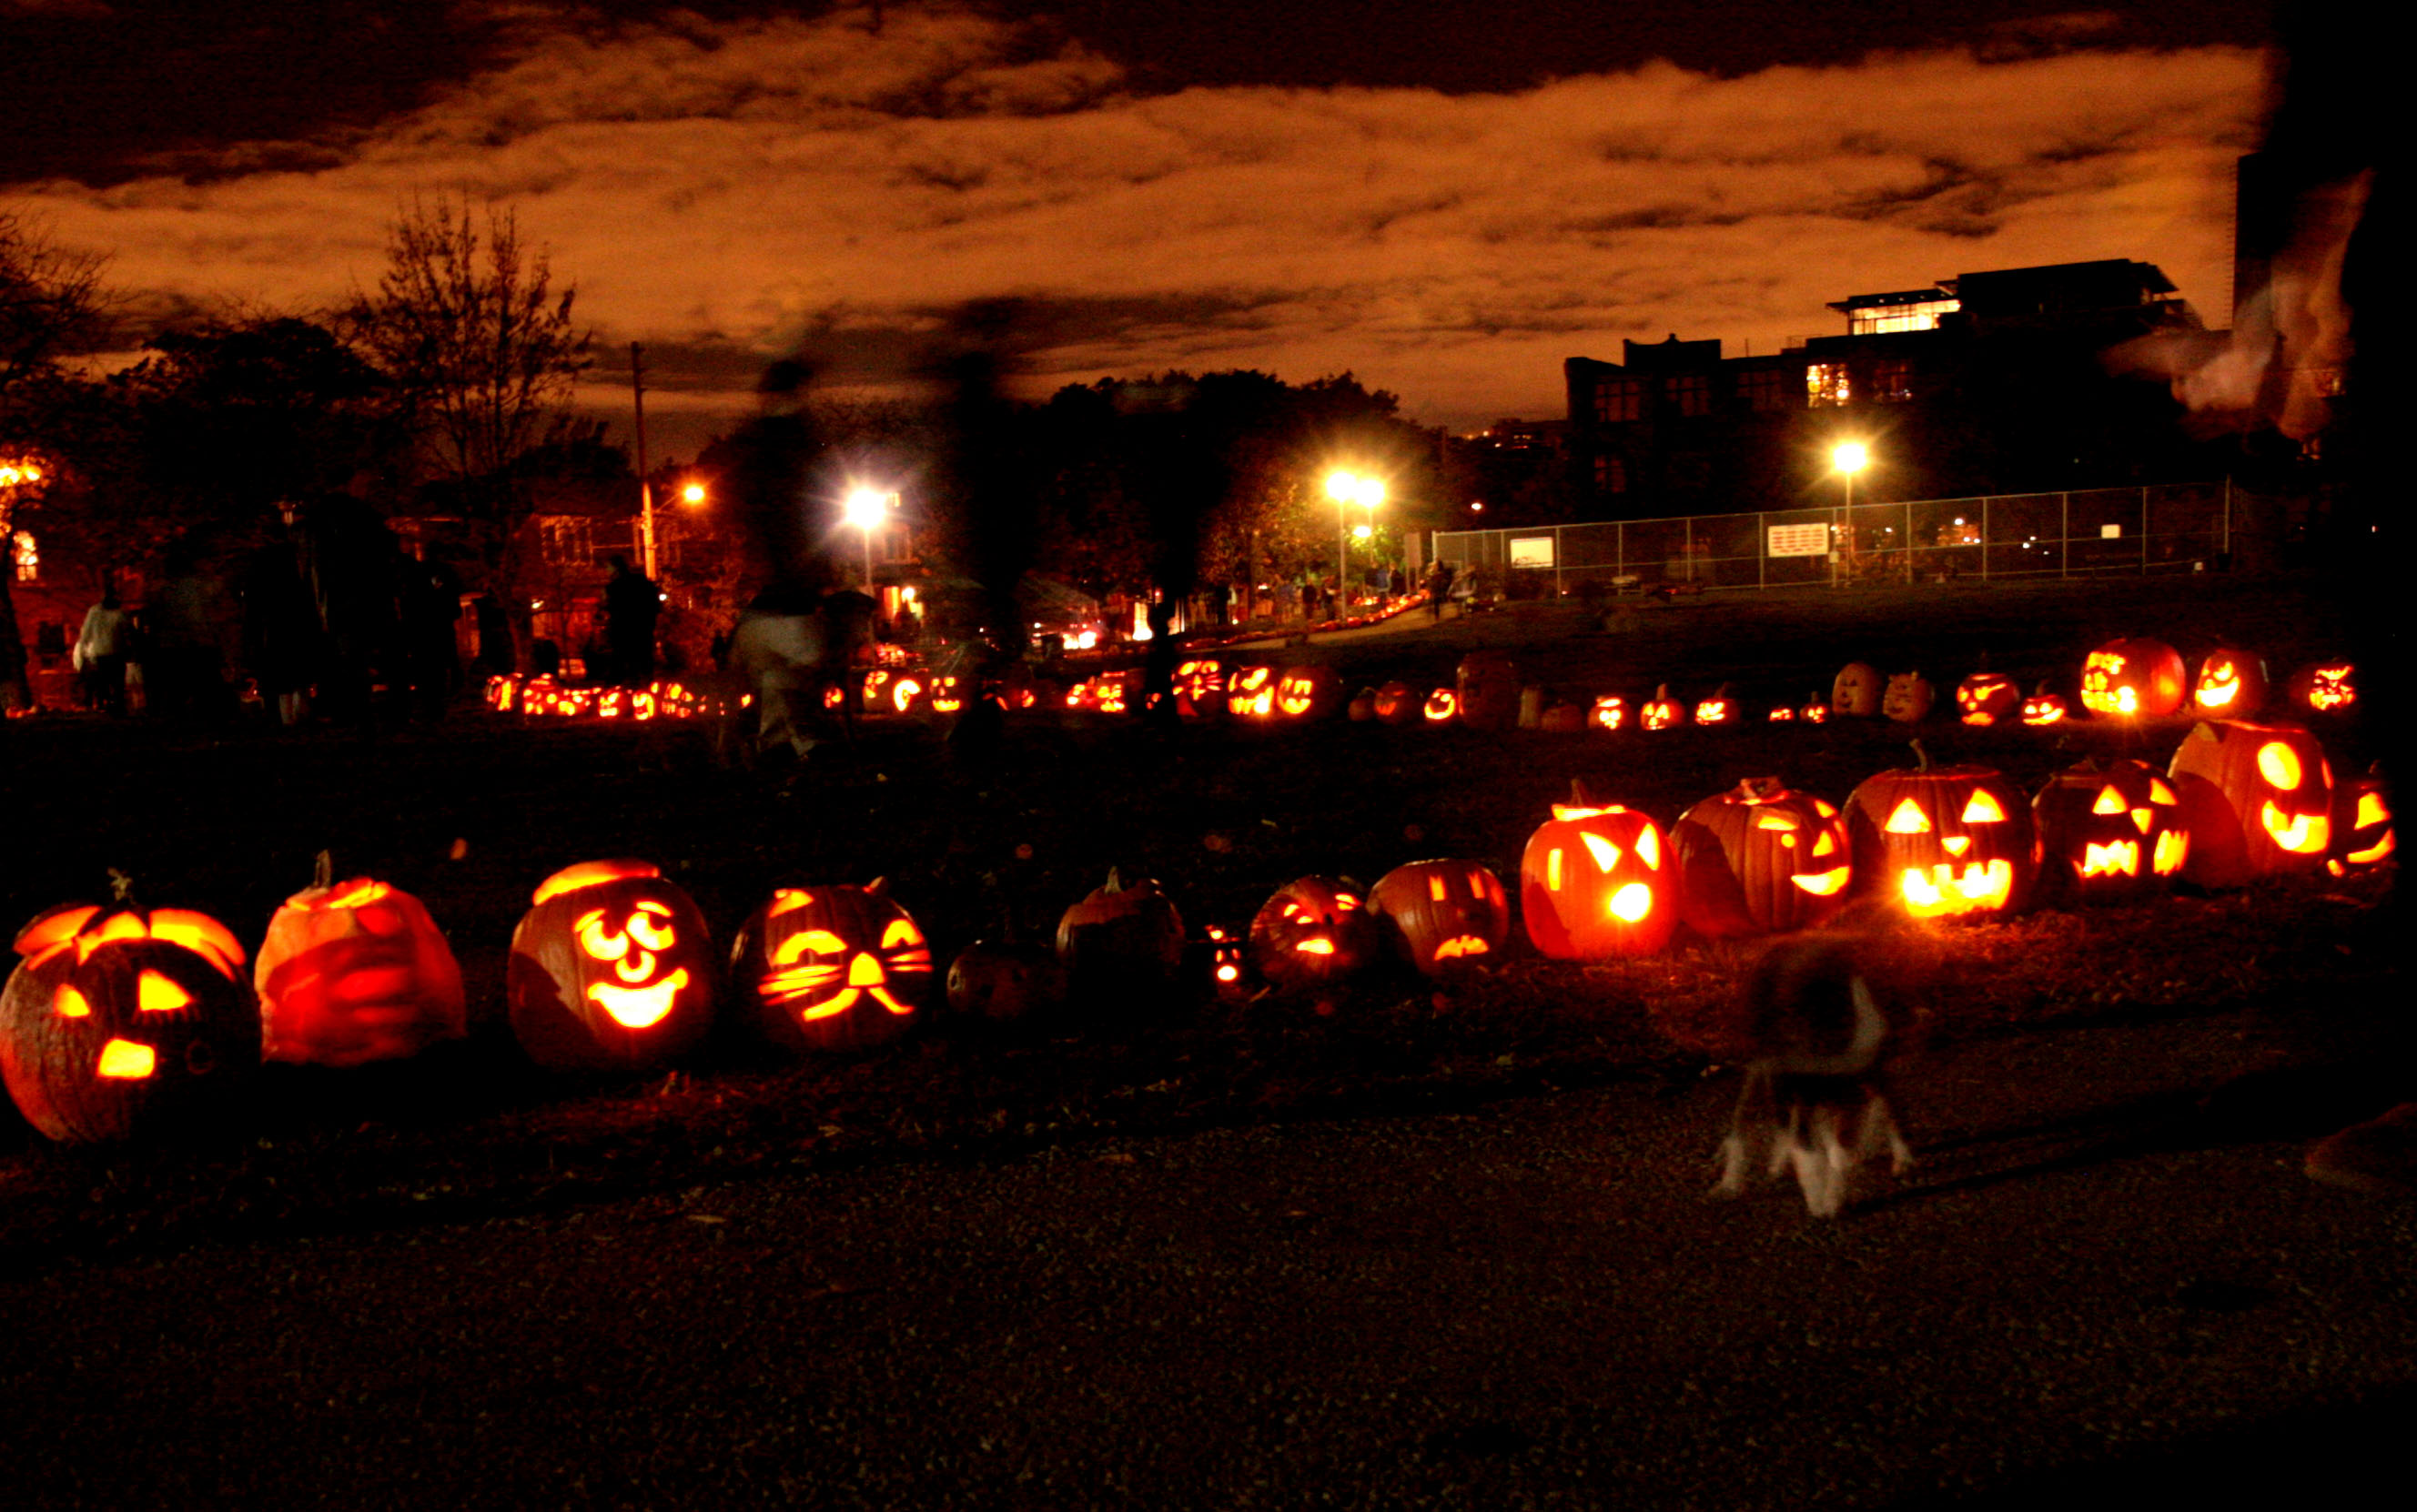 10th annual sorauren pumpkin parade on nov 1 sorauren park - Halloween decorations toronto ...